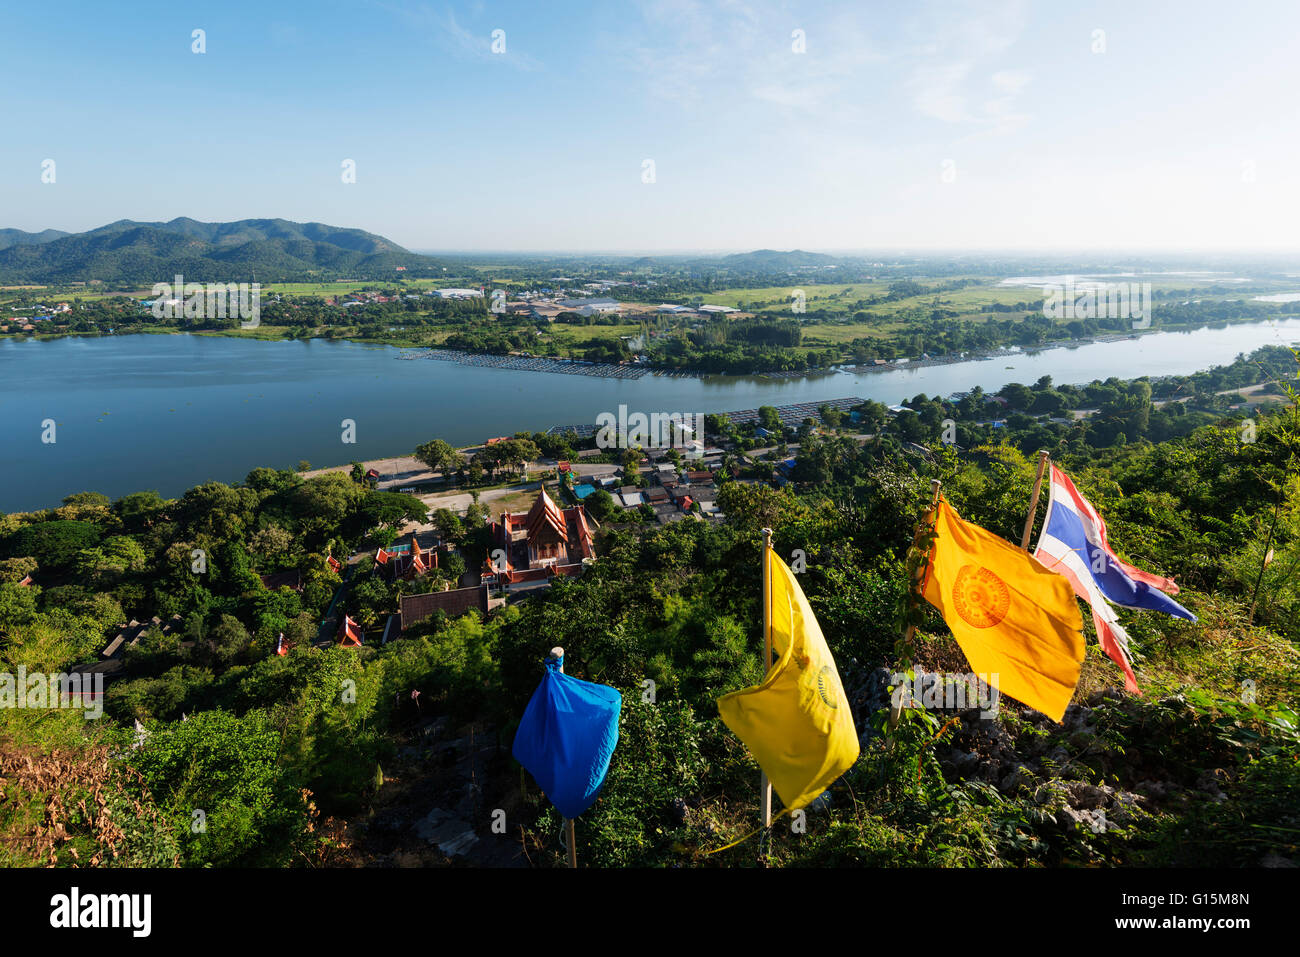 Wat Ban Tham (The Dragon temple) and River Kwai, Kanchanaburi, Thailand, Southeast Asia, Asia - Stock Image